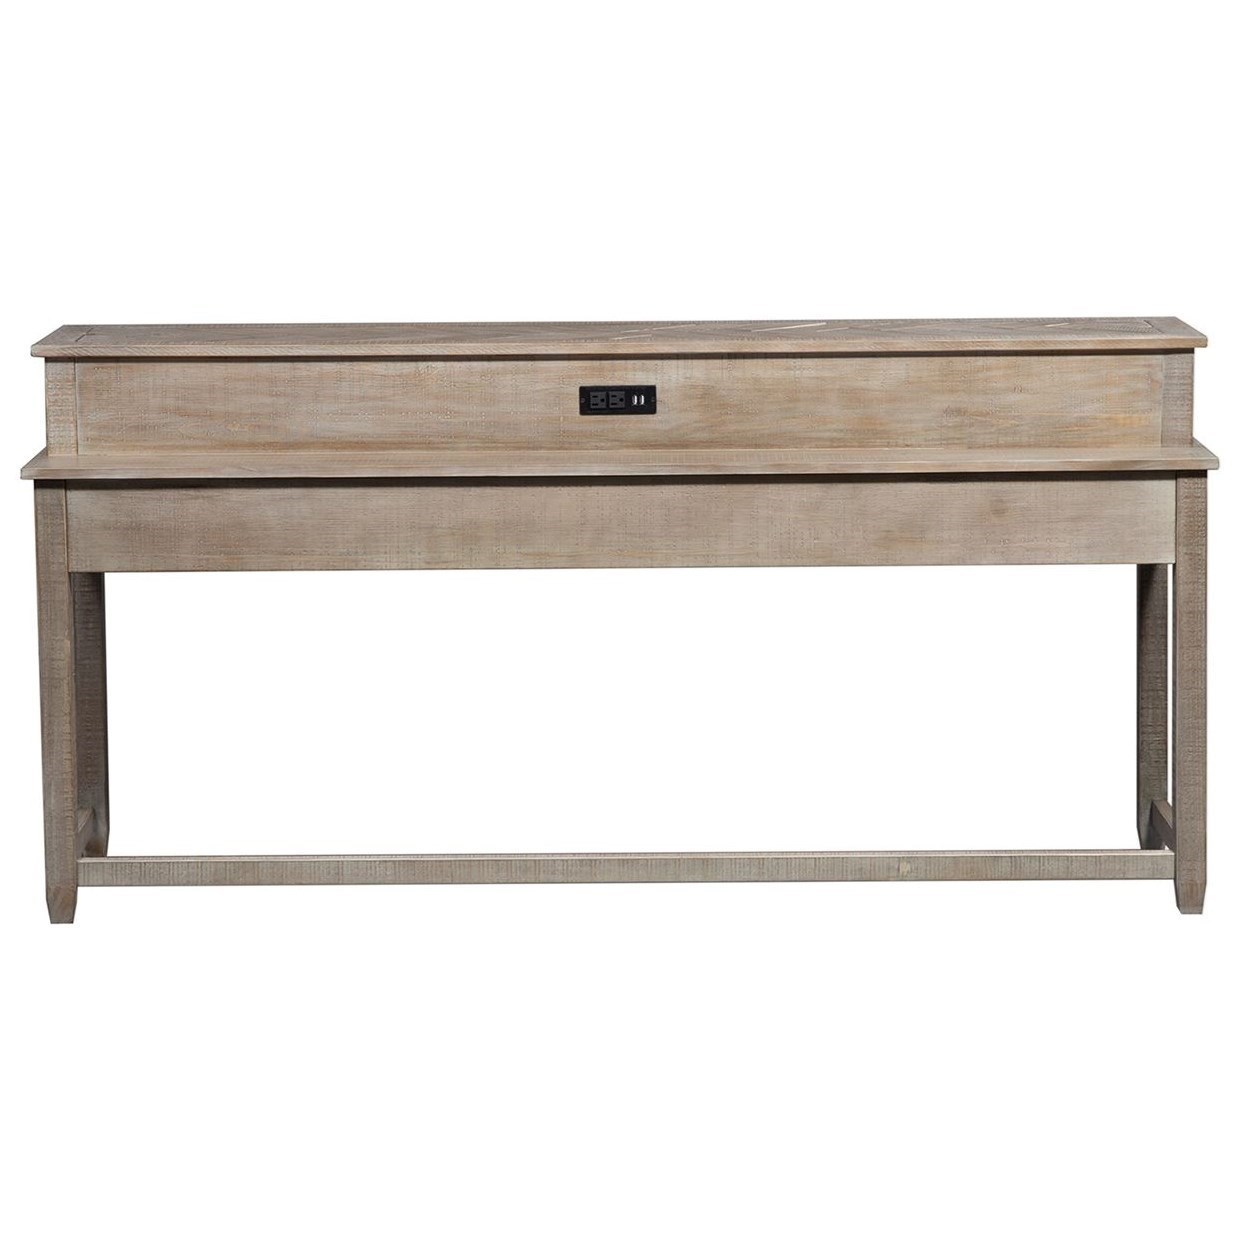 Rustic Console Bar Table with Charging Ports